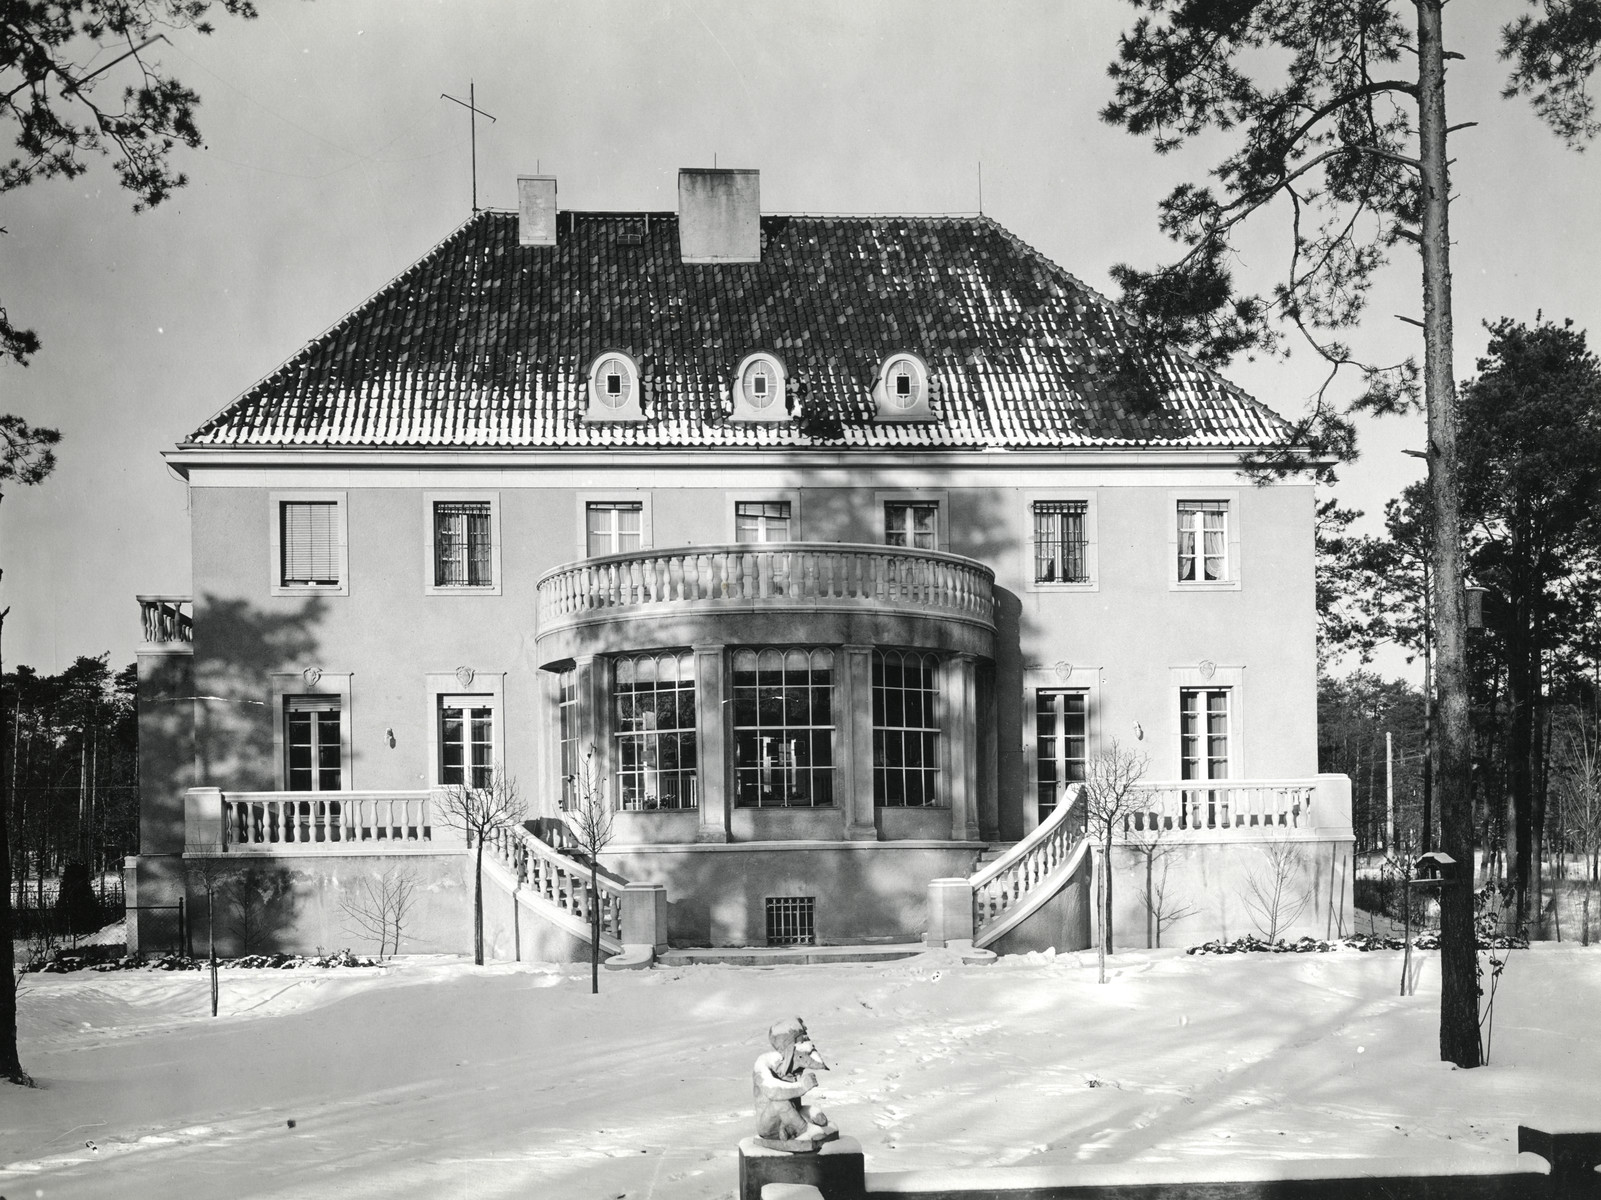 Exterior view of the Lewinnek's home in Berlin prior to the Nazi take-over.